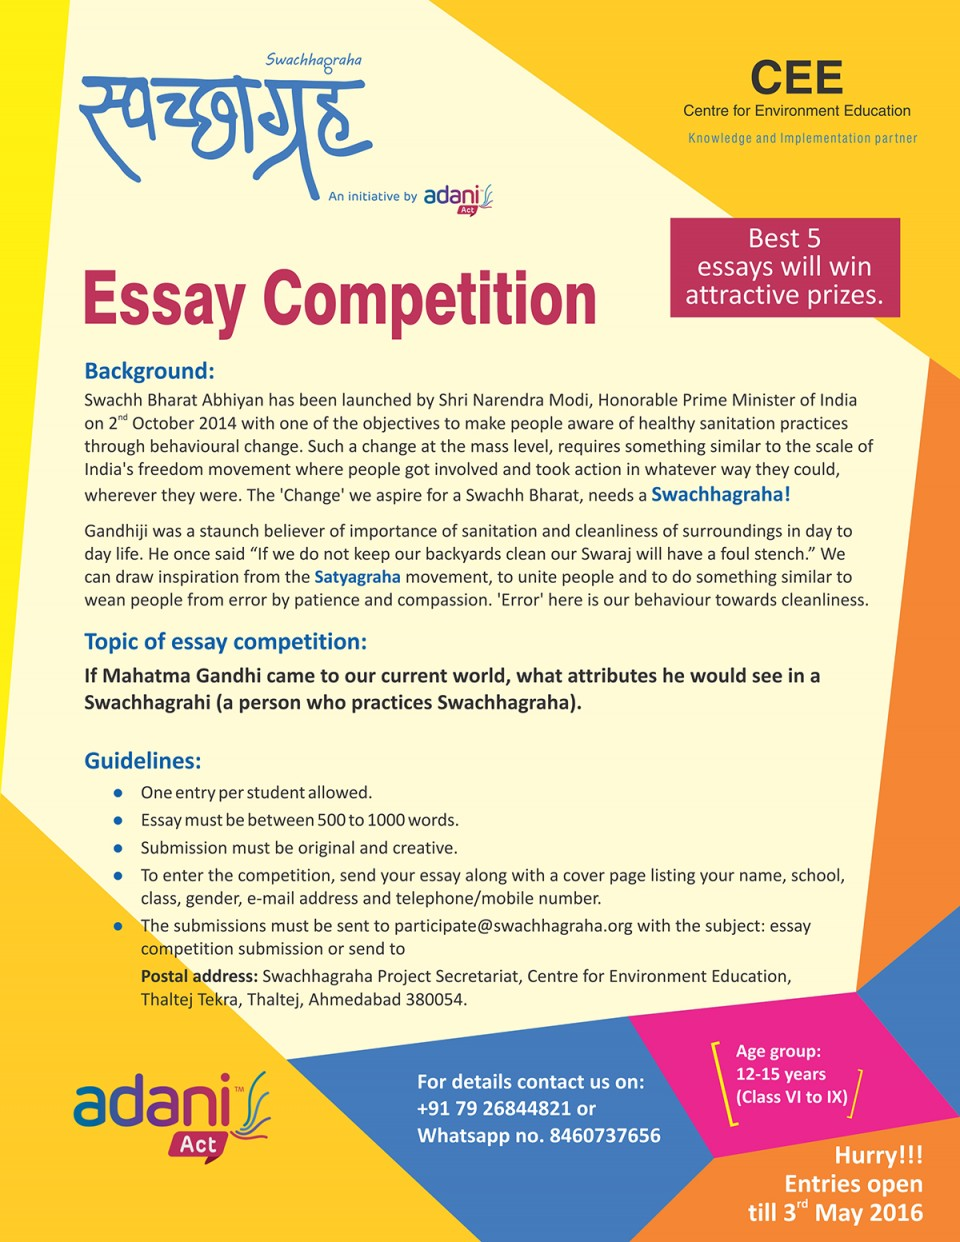 011 20180129171946essay20competition Essay About Cleanliness In School Phenomenal On Premises Persuasive Toilets 960